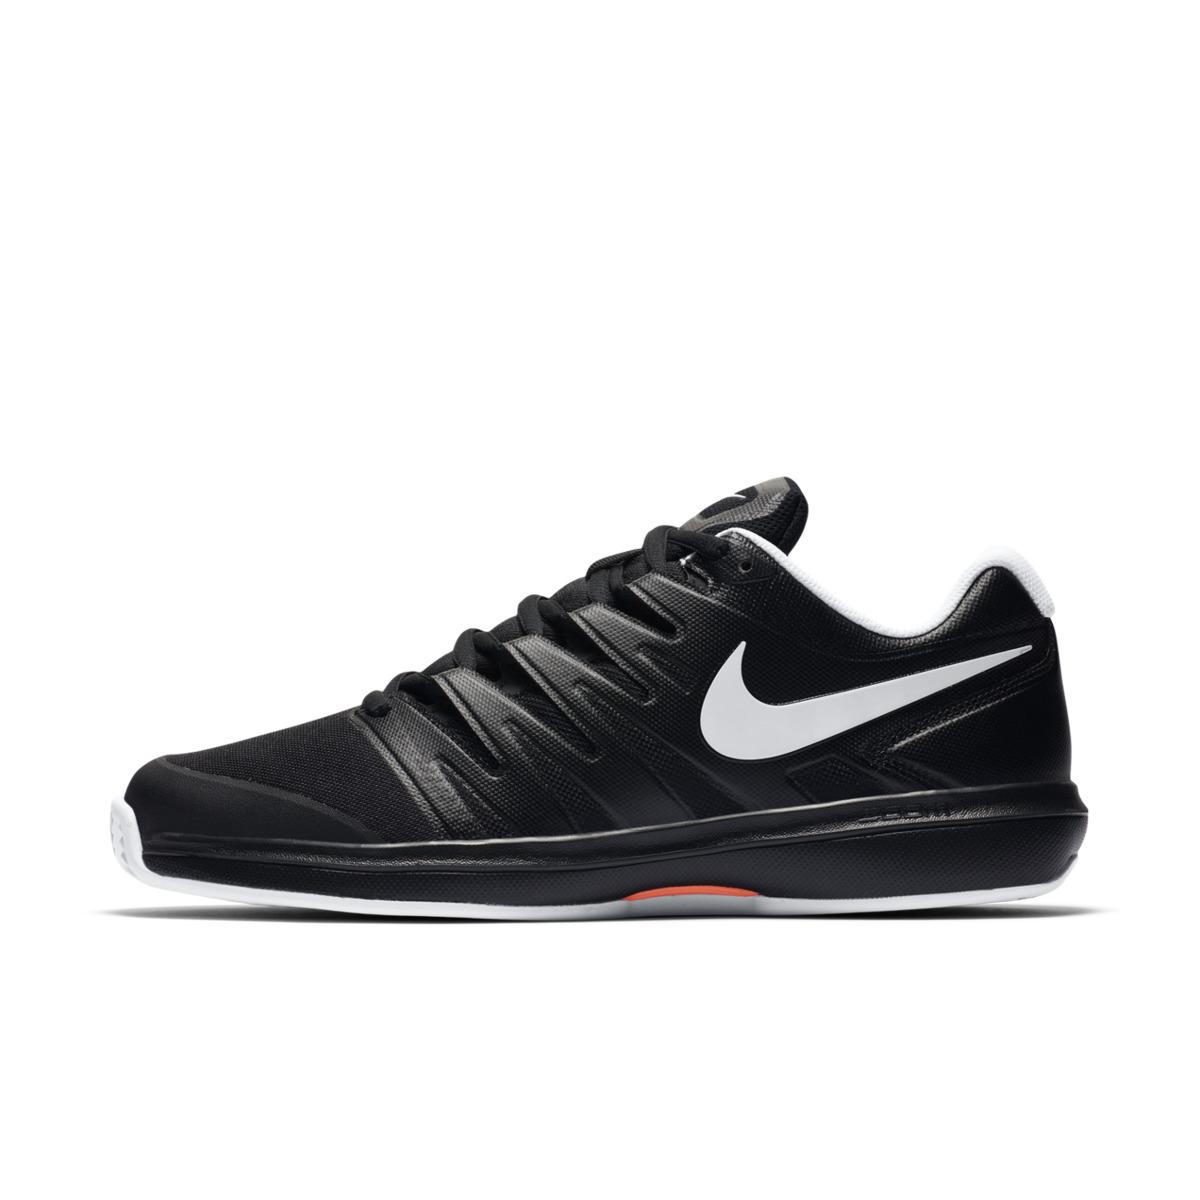 ac7e5accc2570 Nike - White Air Zoom Prestige Cly Tennis padel Shoes for Men - Lyst. View  fullscreen